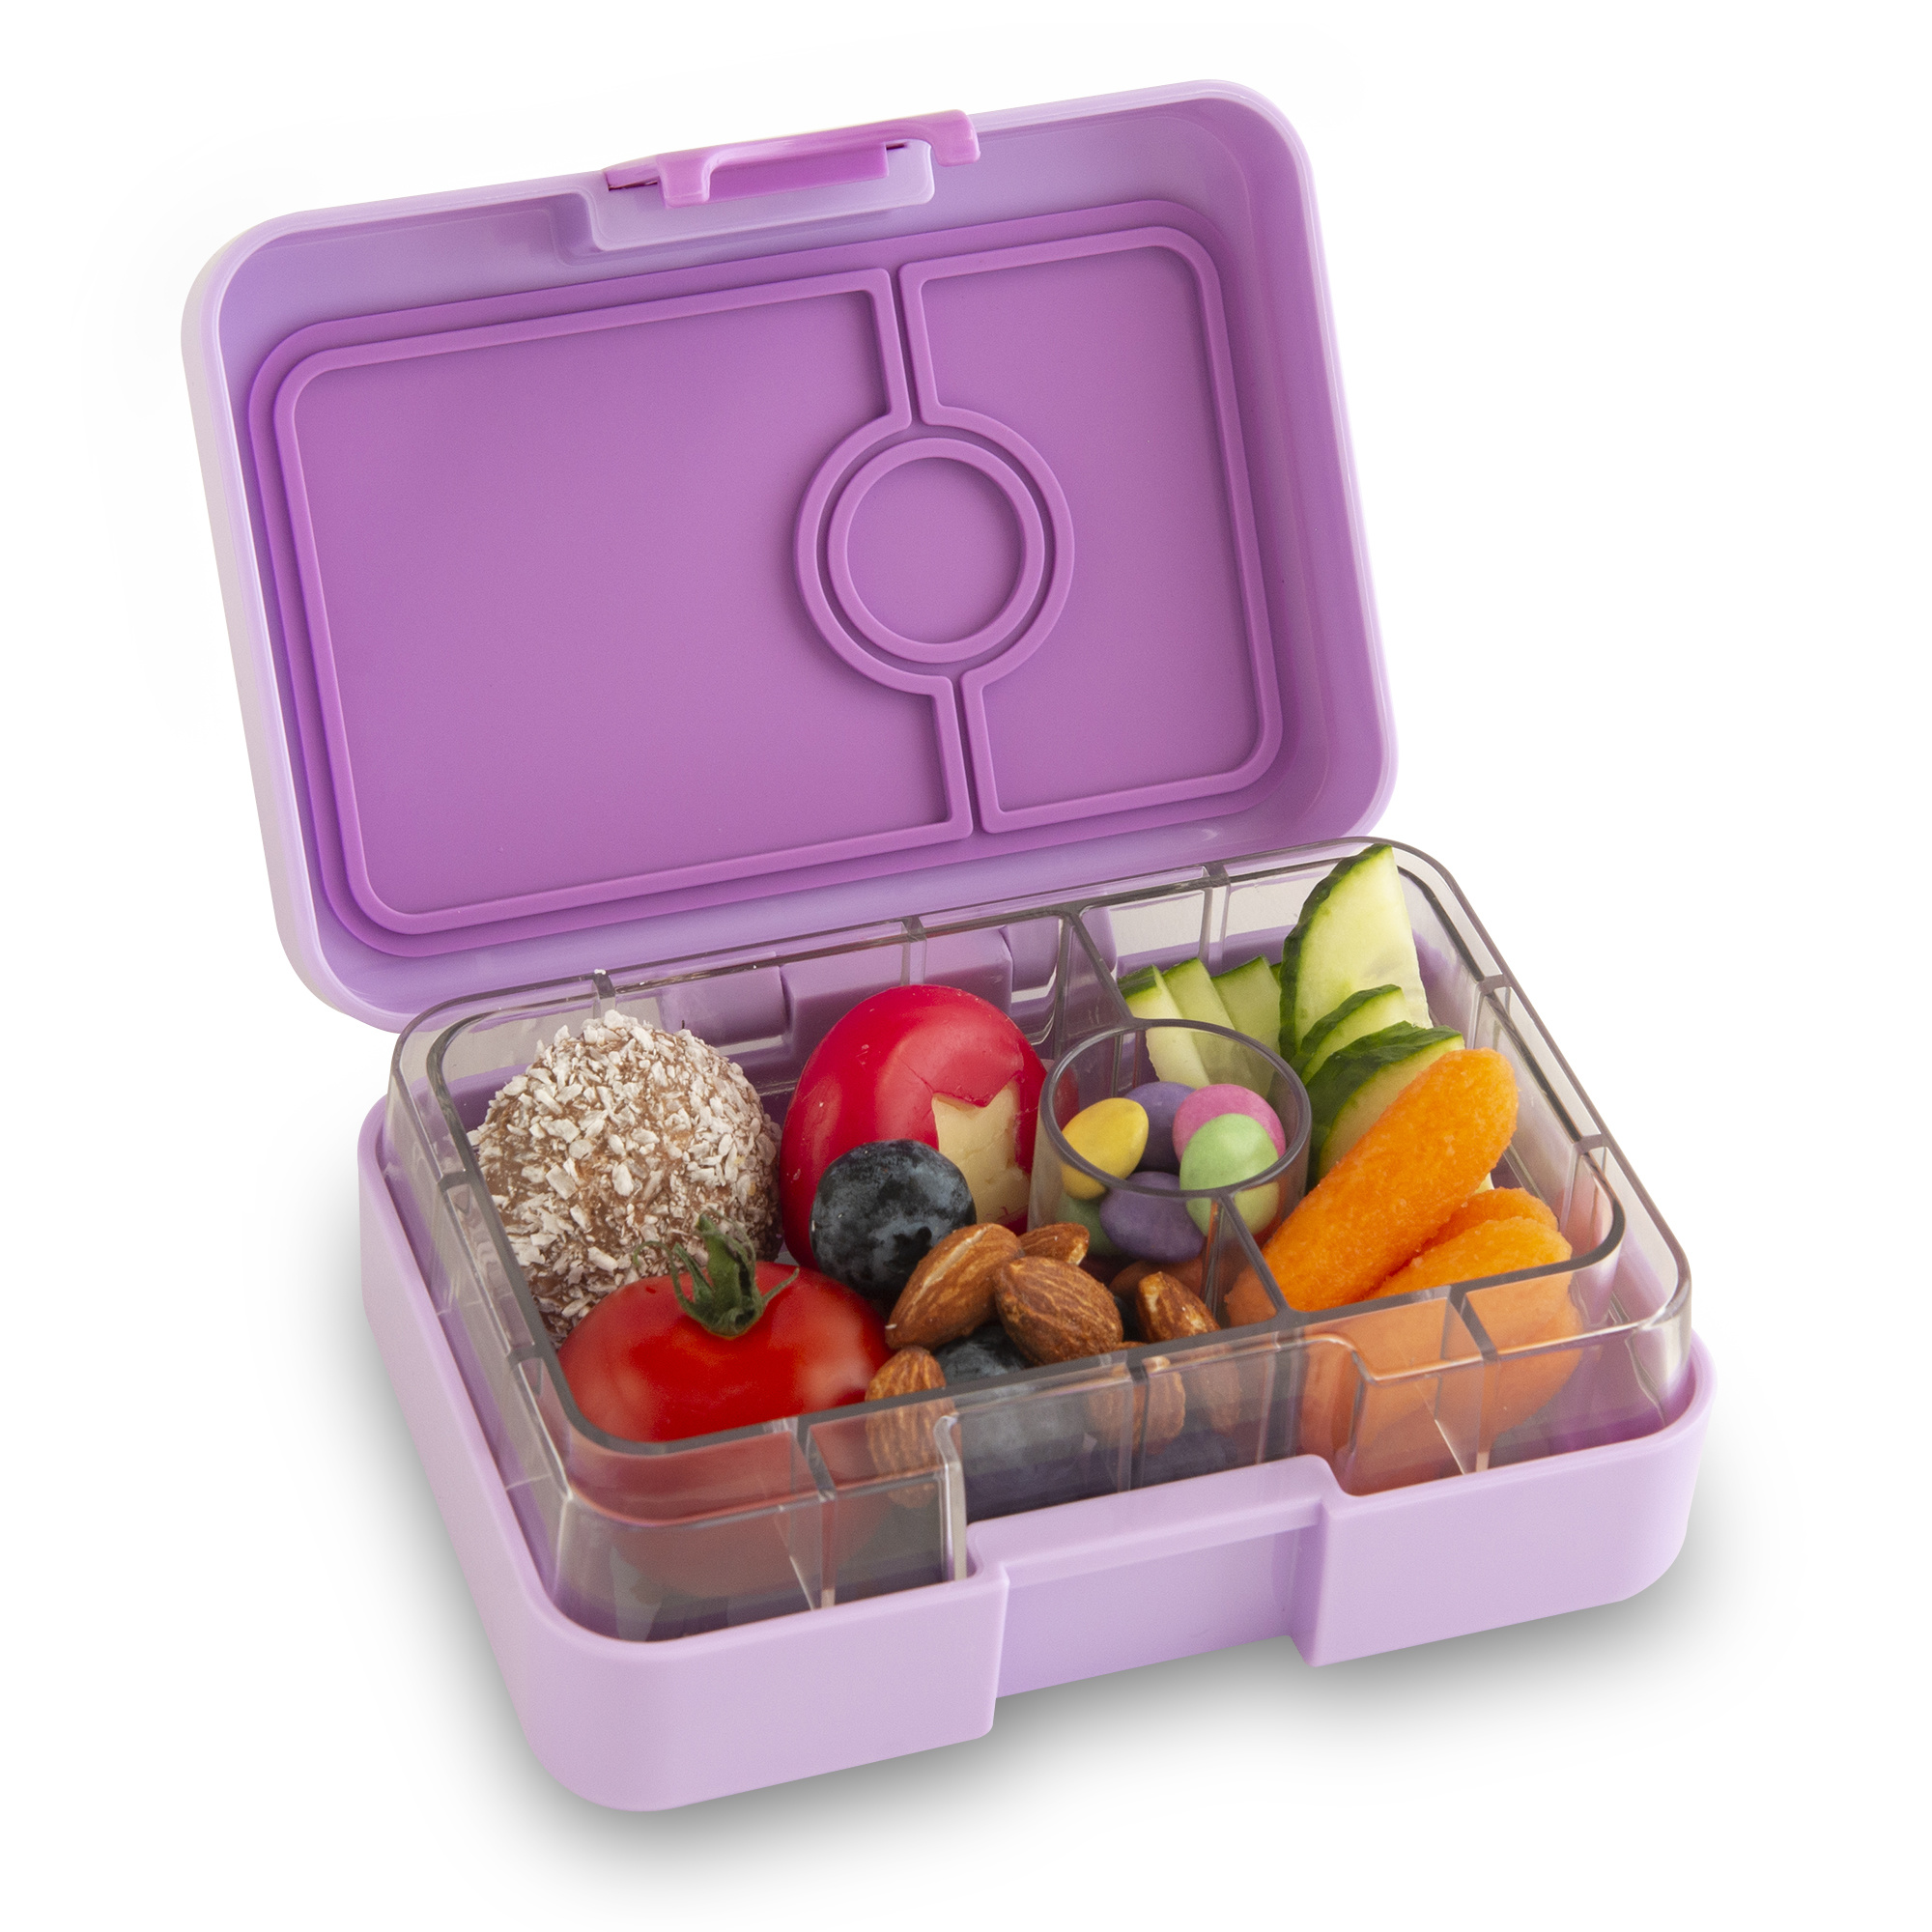 Yumbox MiniSnack 3-sections Lila purple / Toucan tray-5